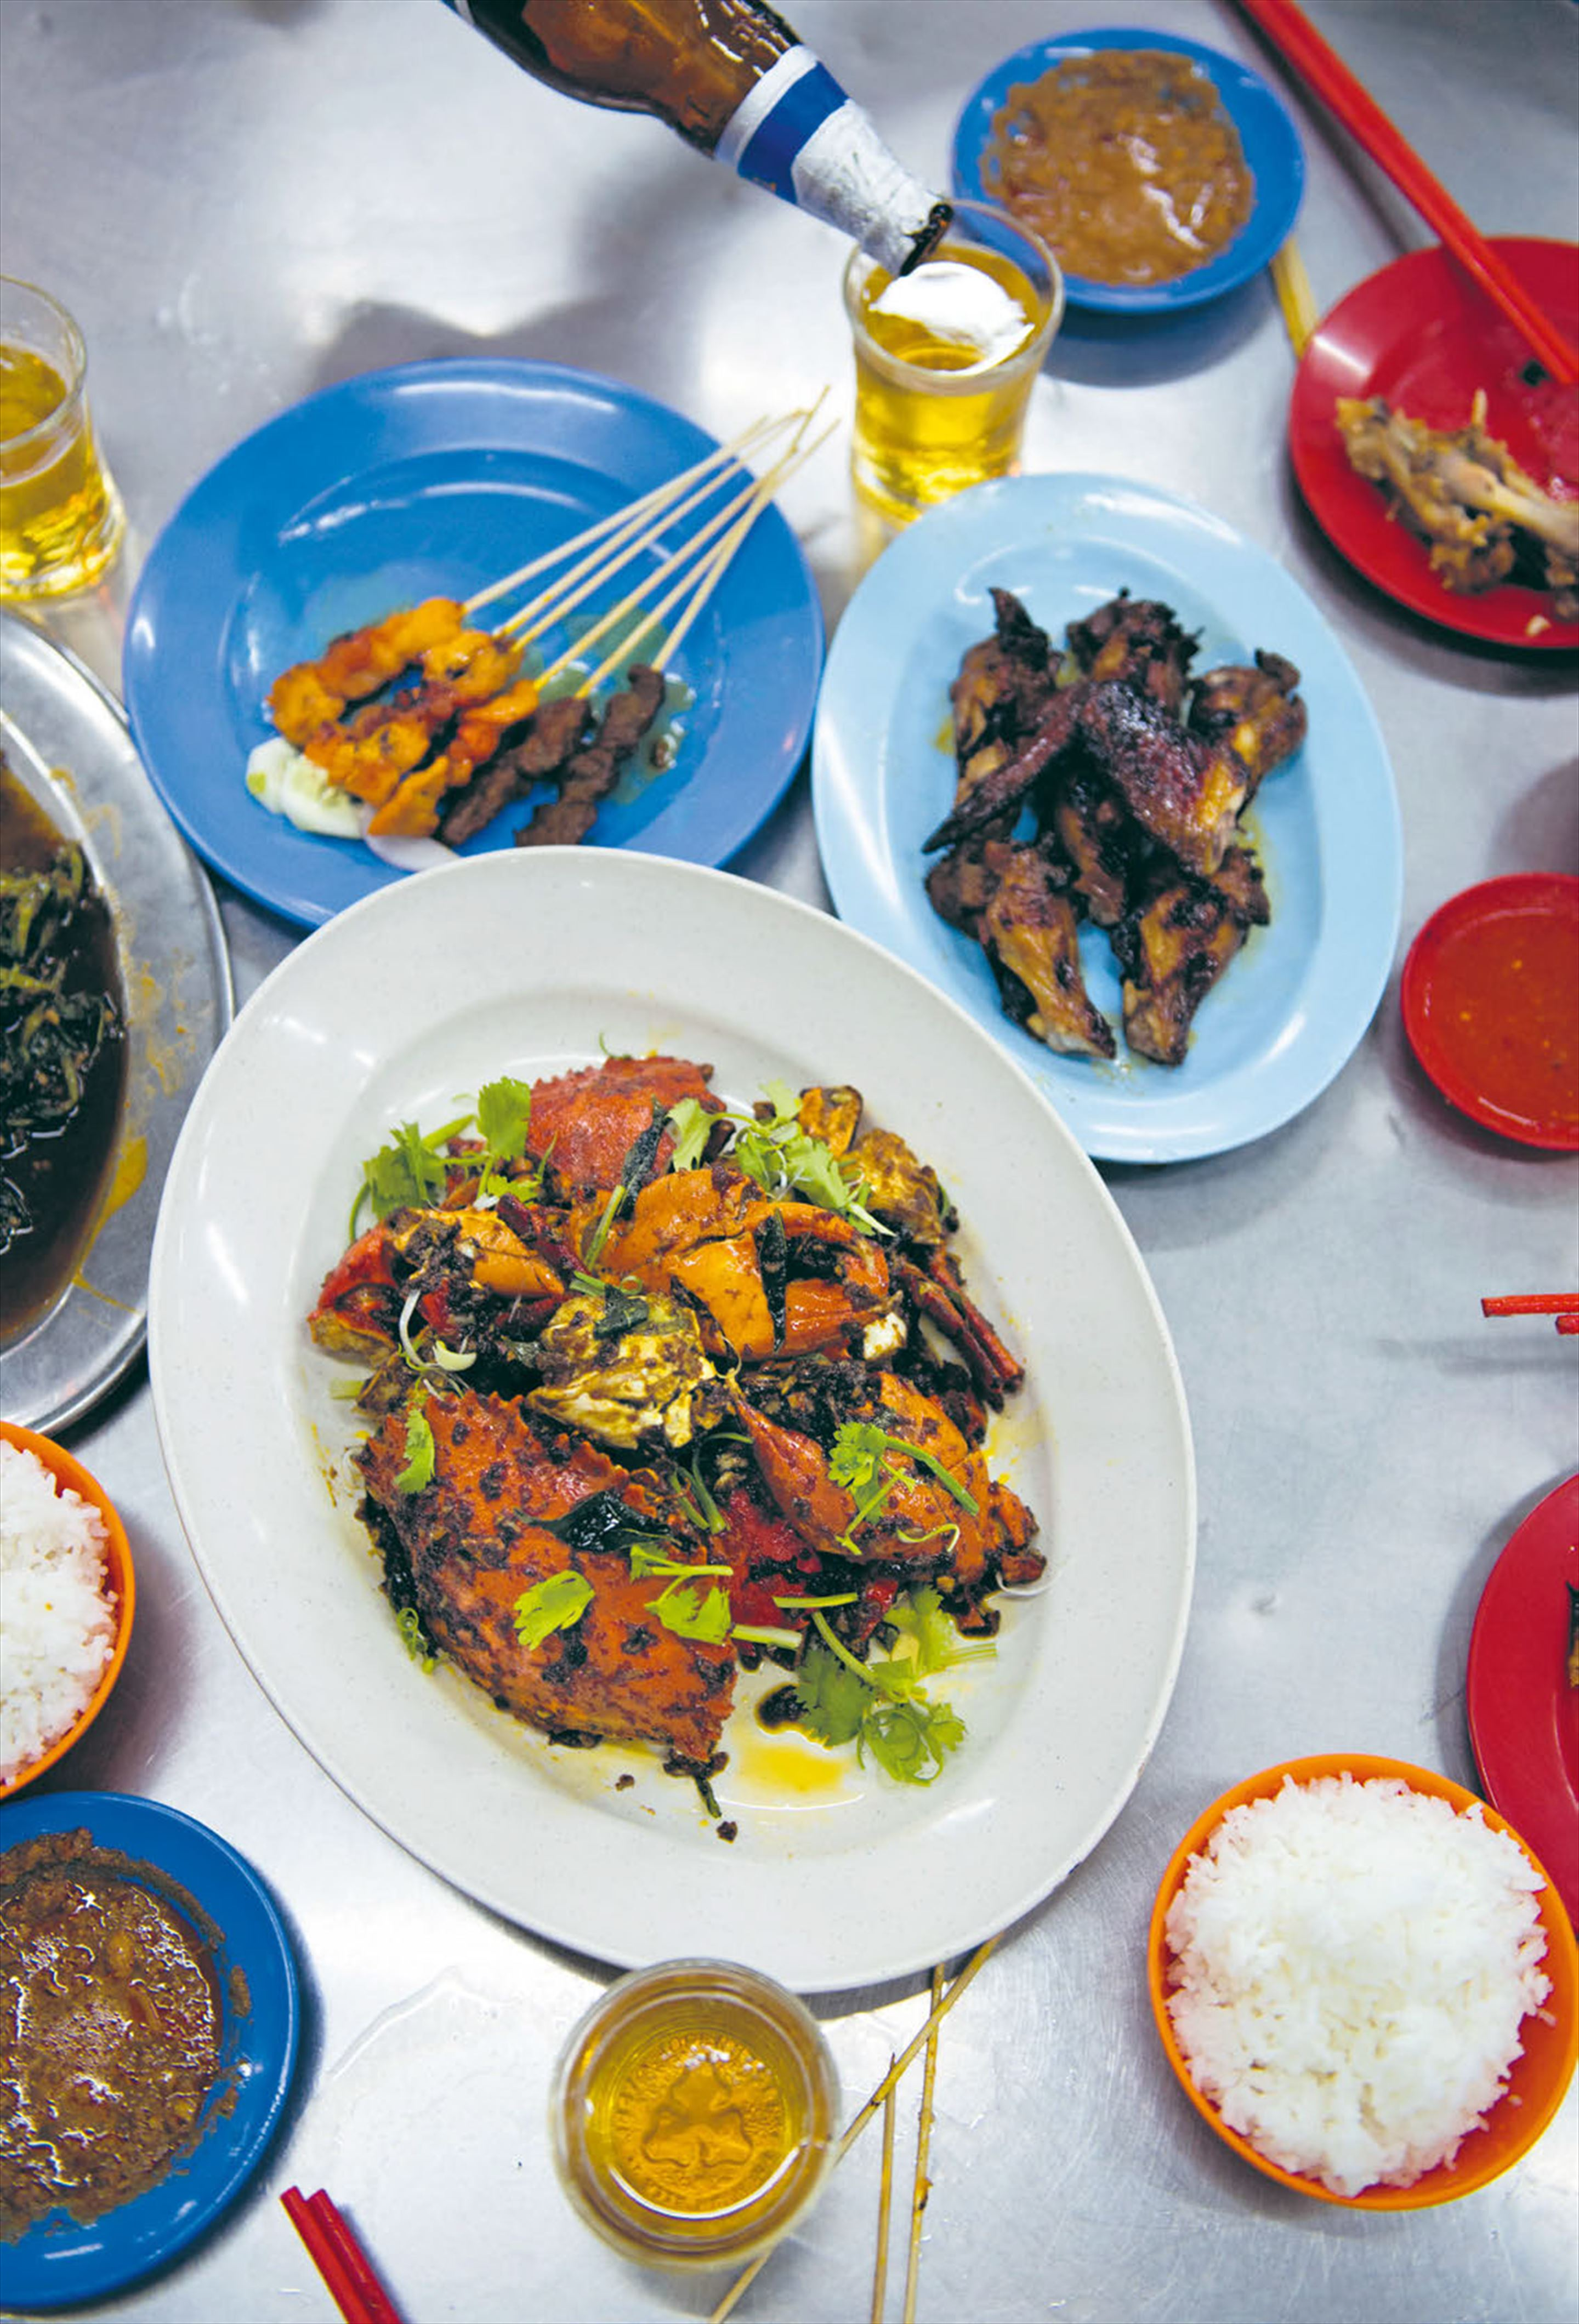 Wok-tossed fragrant mud crab